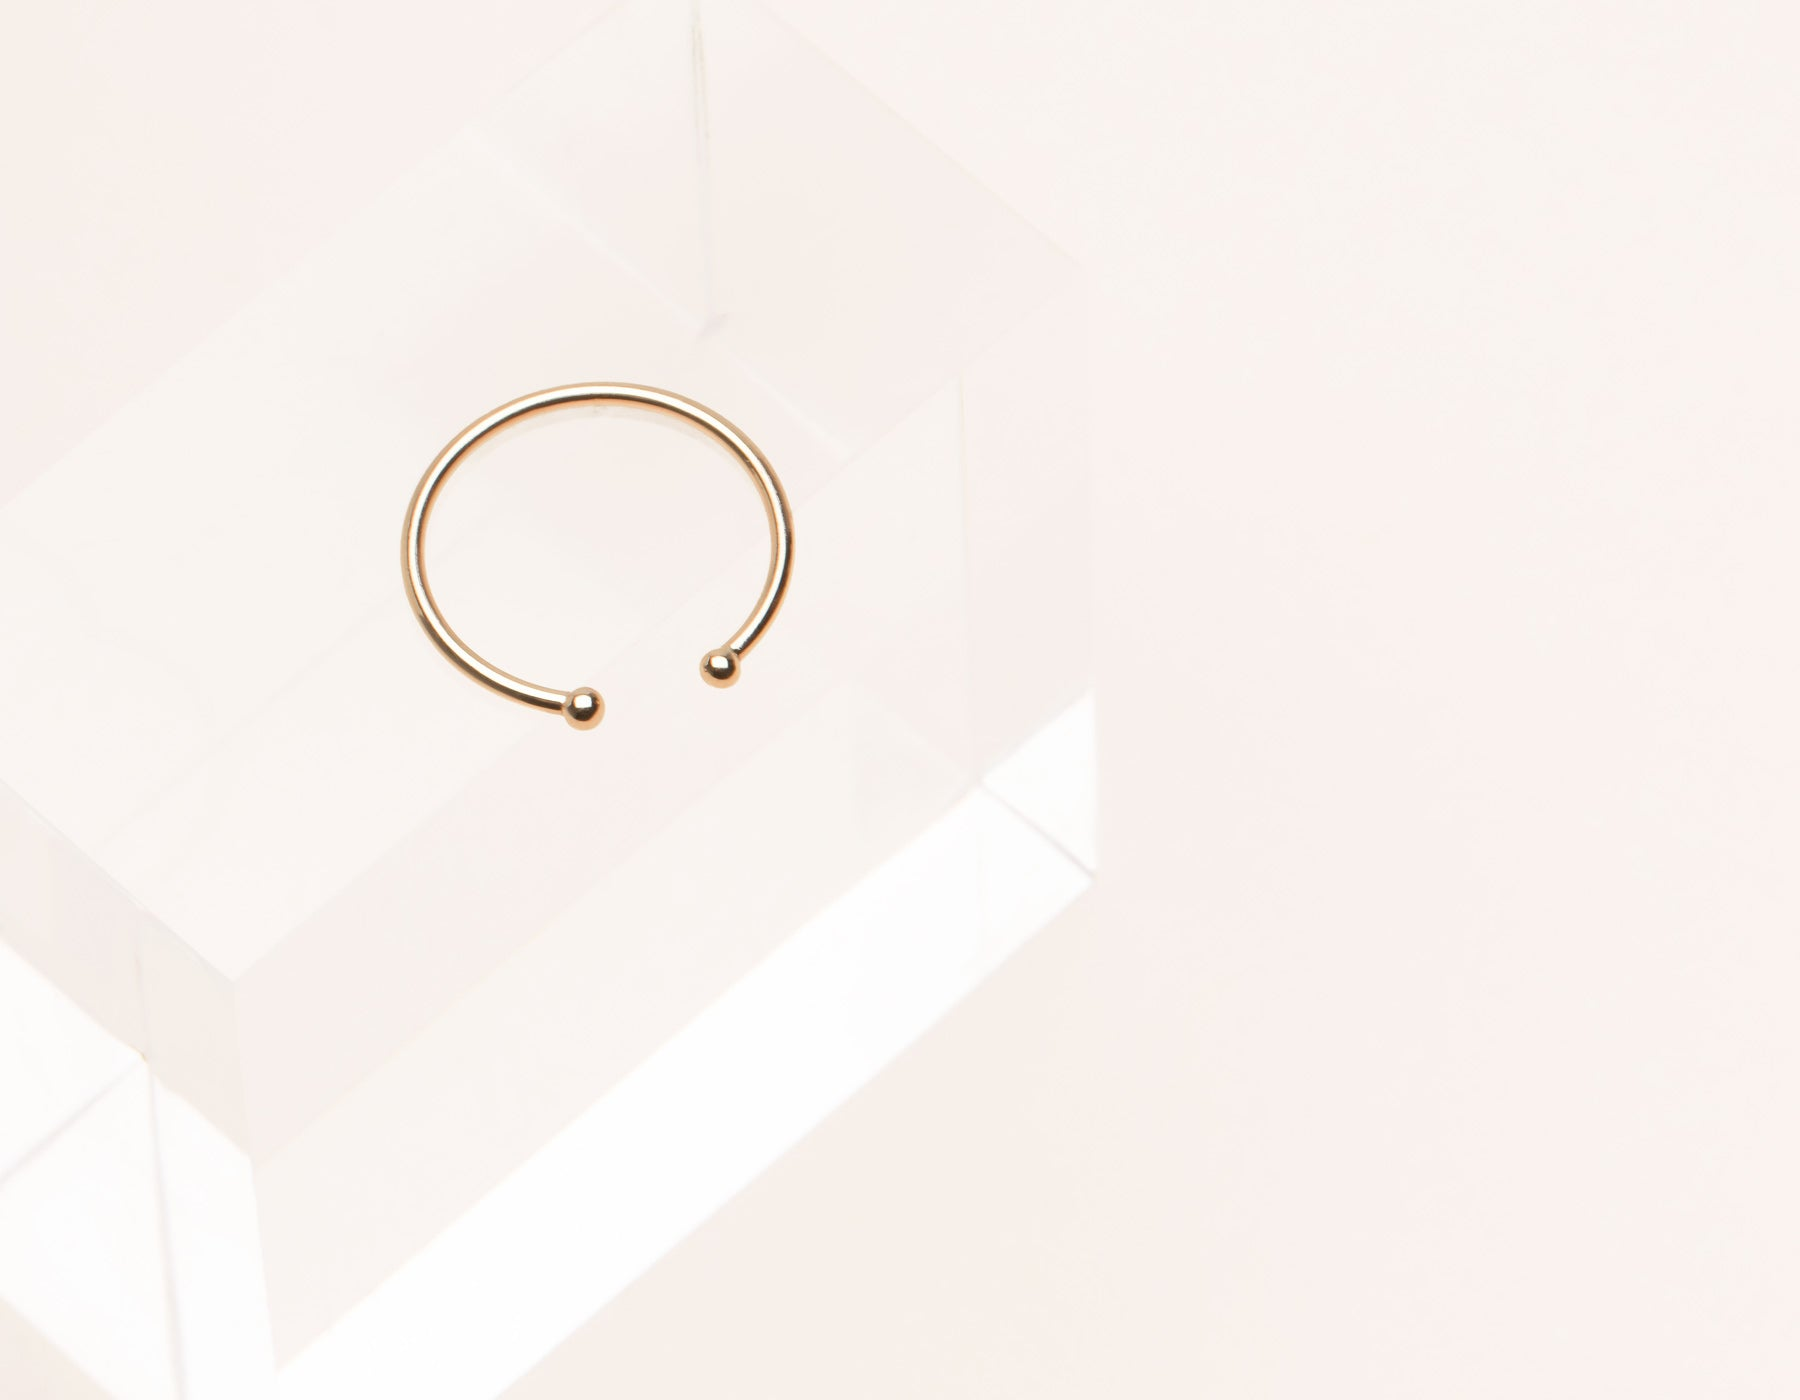 Delicate elegant 14k solid gold Dot Cuff stacking ring by Vrai & Oro minimalist jewelry, 14K Rose Gold